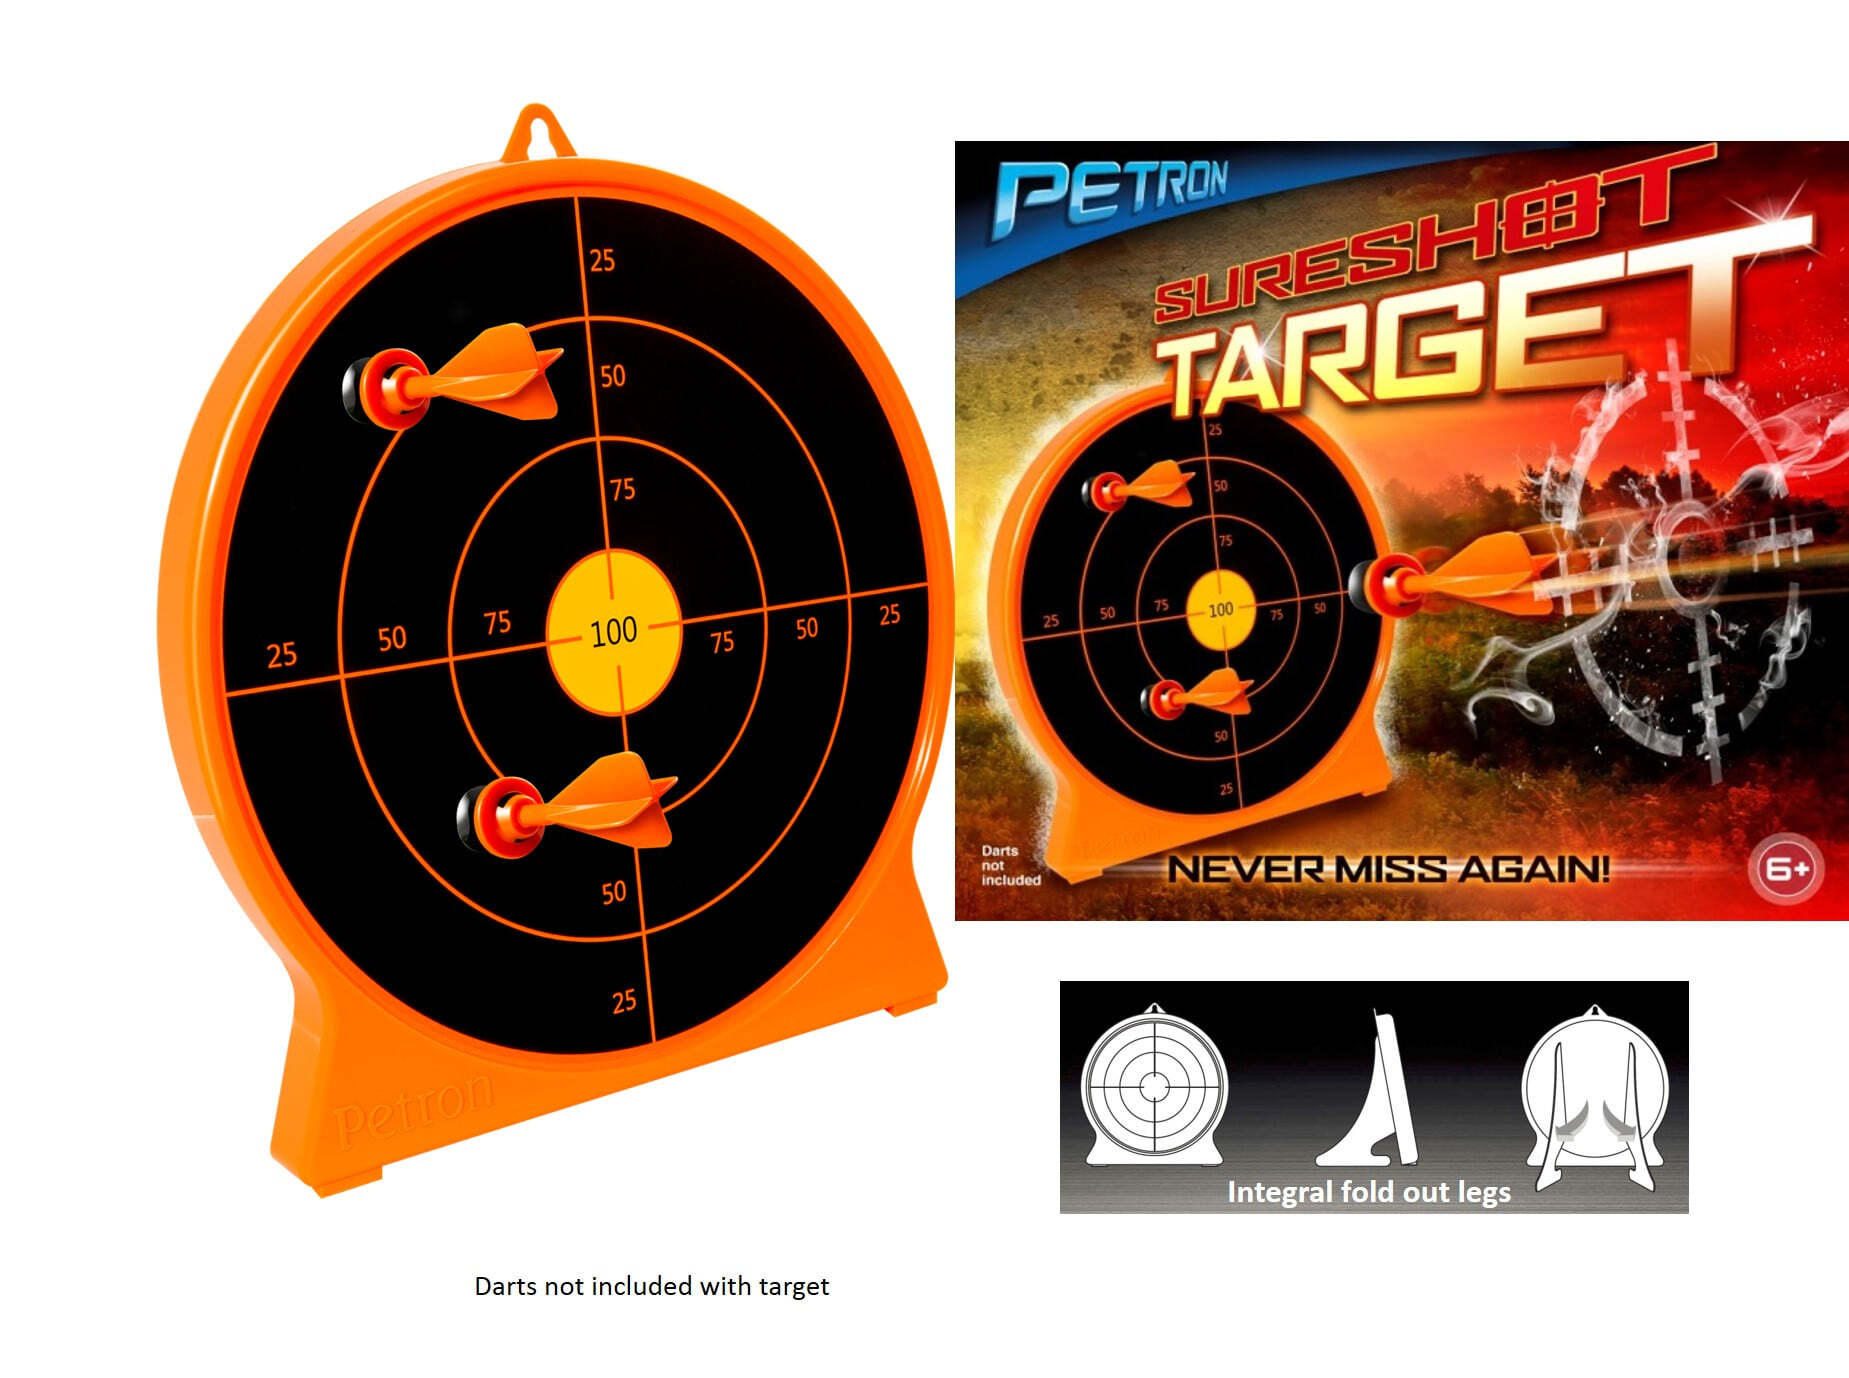 SURESHOT TARGET AND PACKAGING JPEG-CIBLES SURESHOT - PETRON - A56560